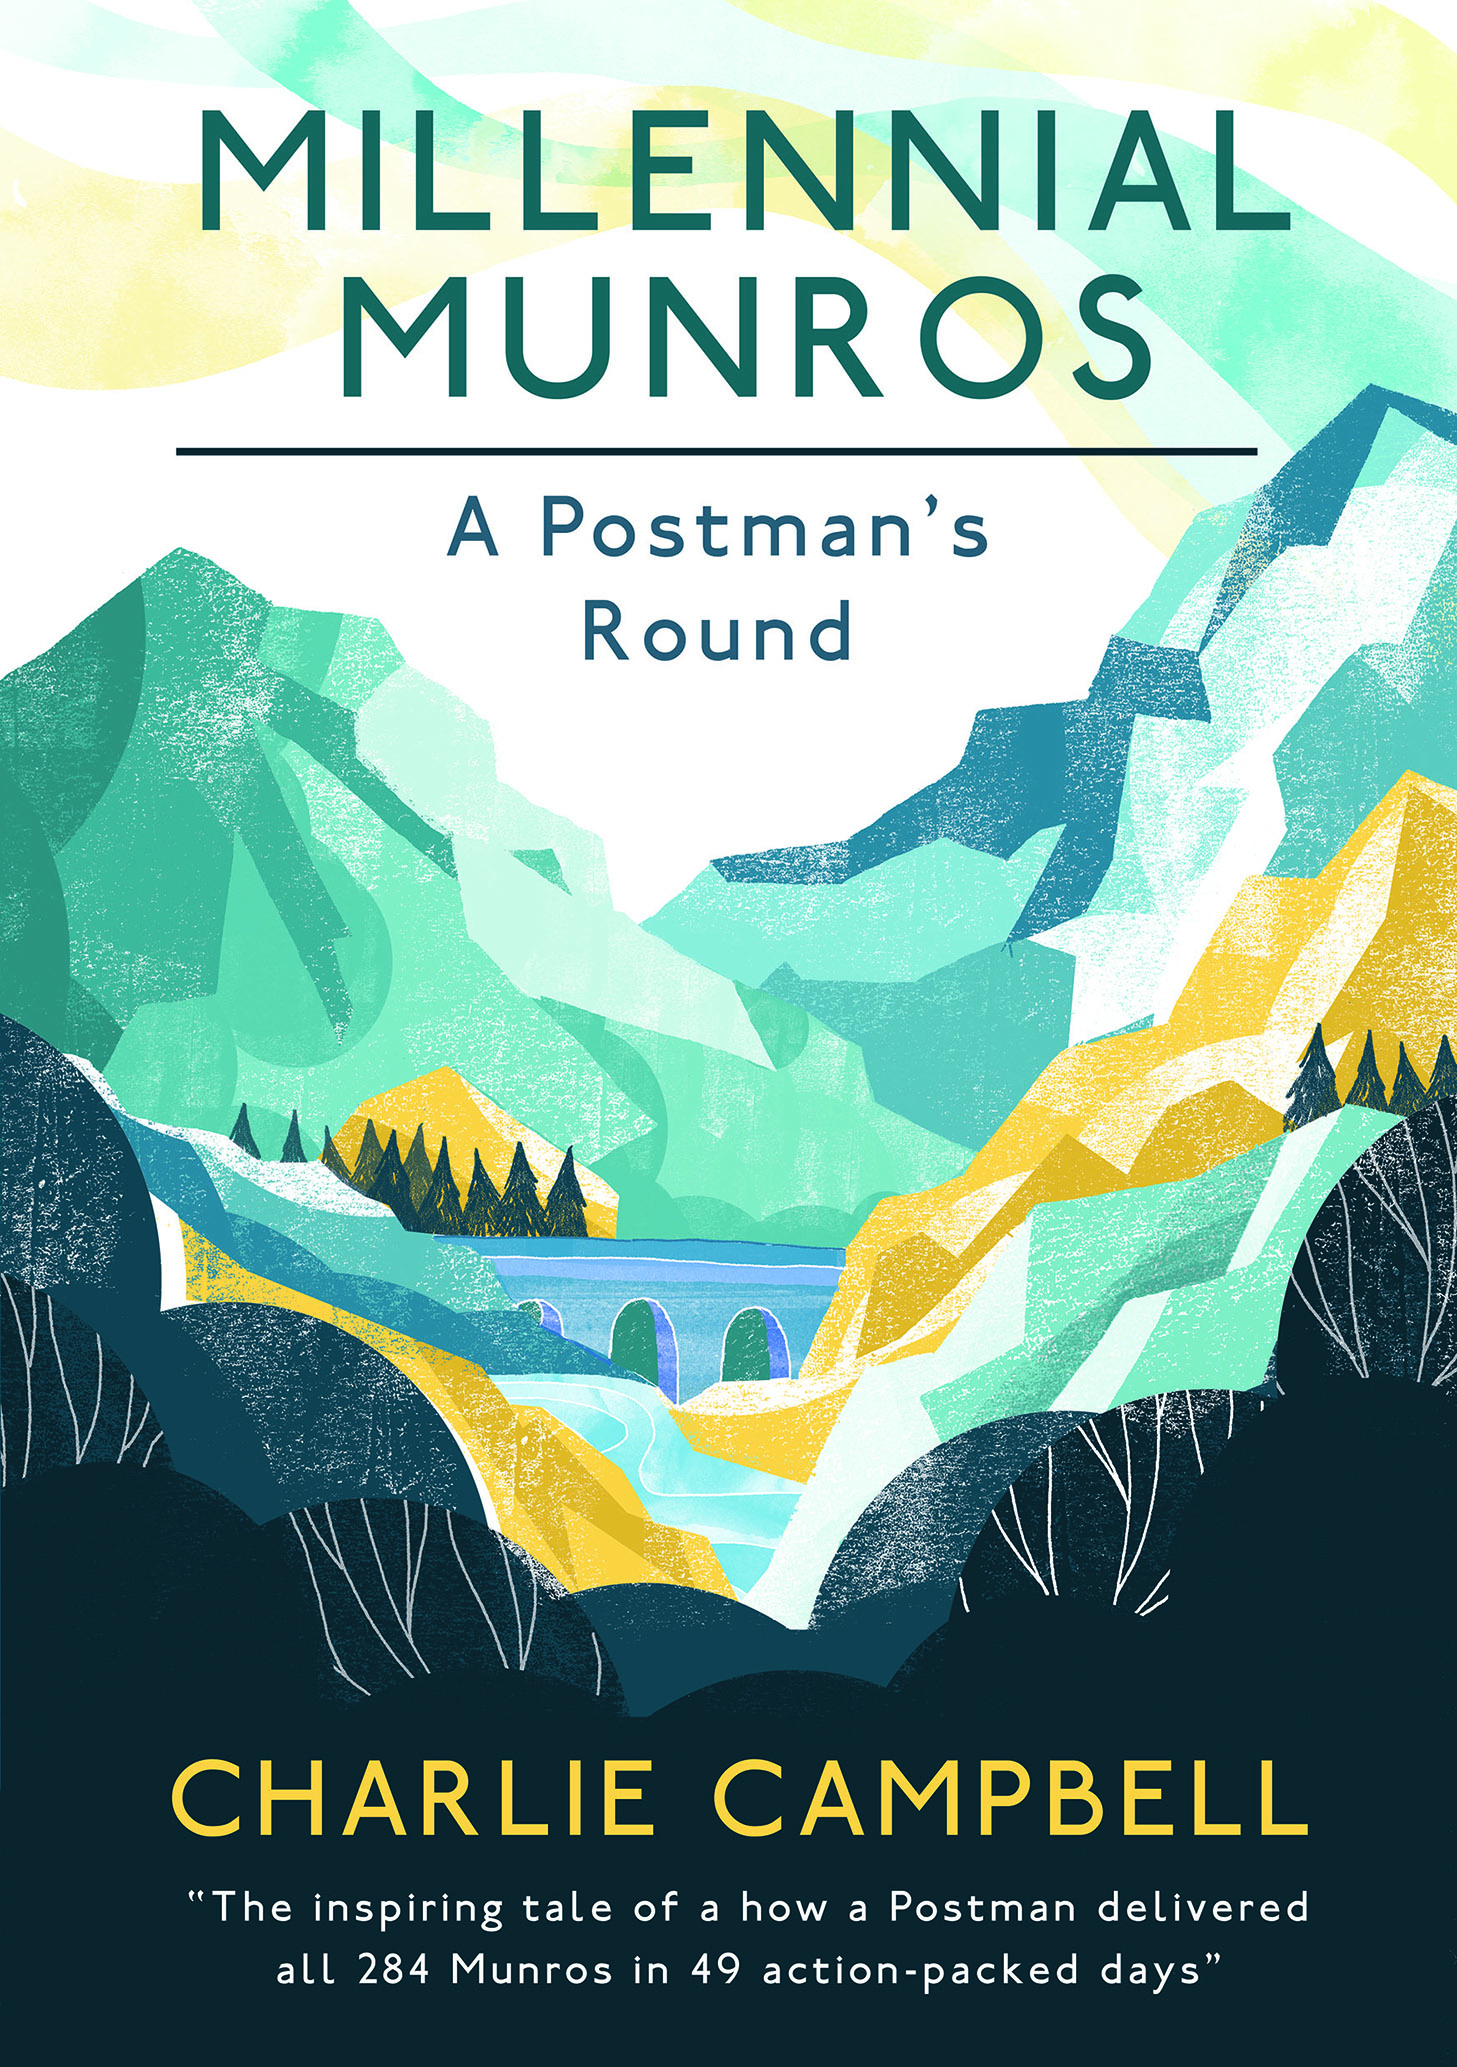 Millennial Munros – A Postman's Round by Charlie Campbell